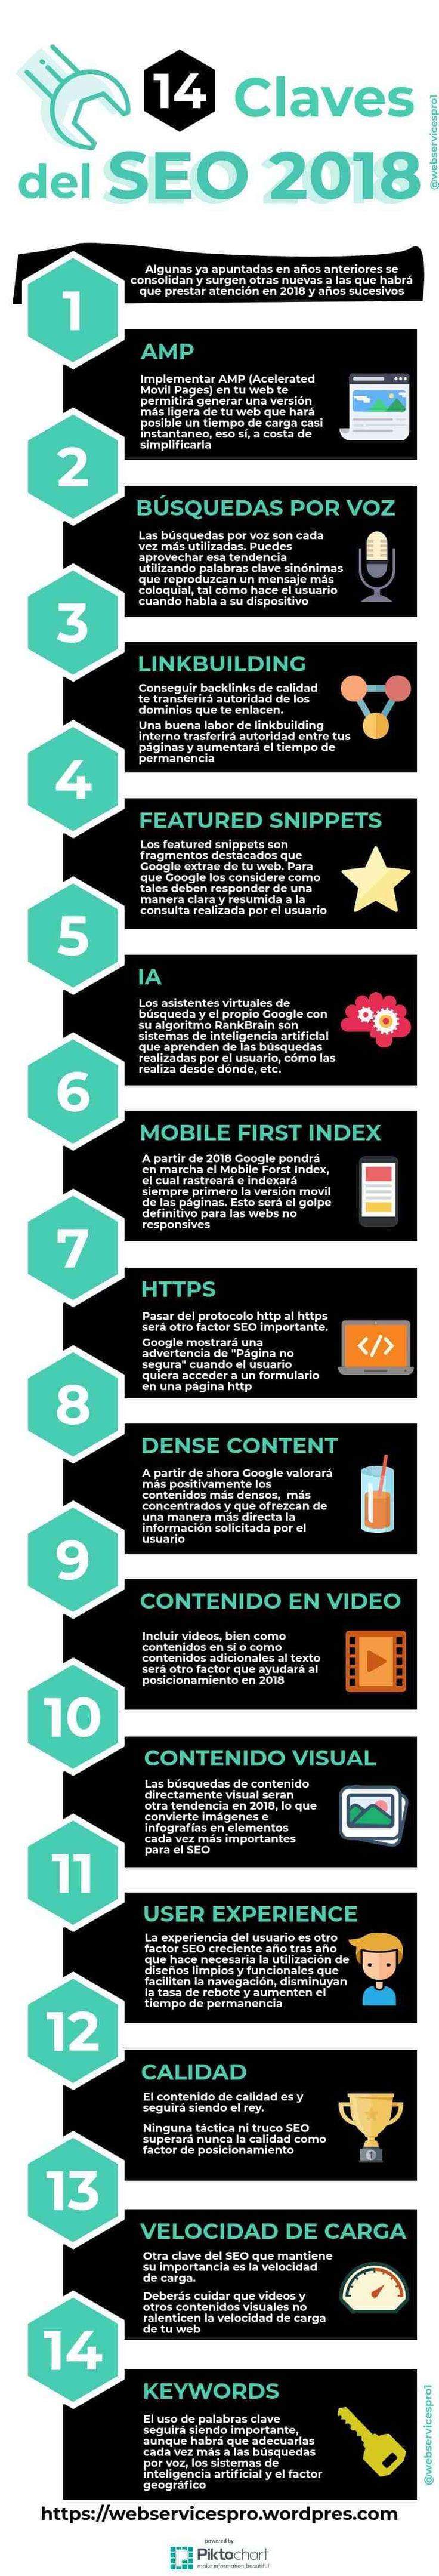 Infografía con 14 factores clave del SEO para 2018. #marketing